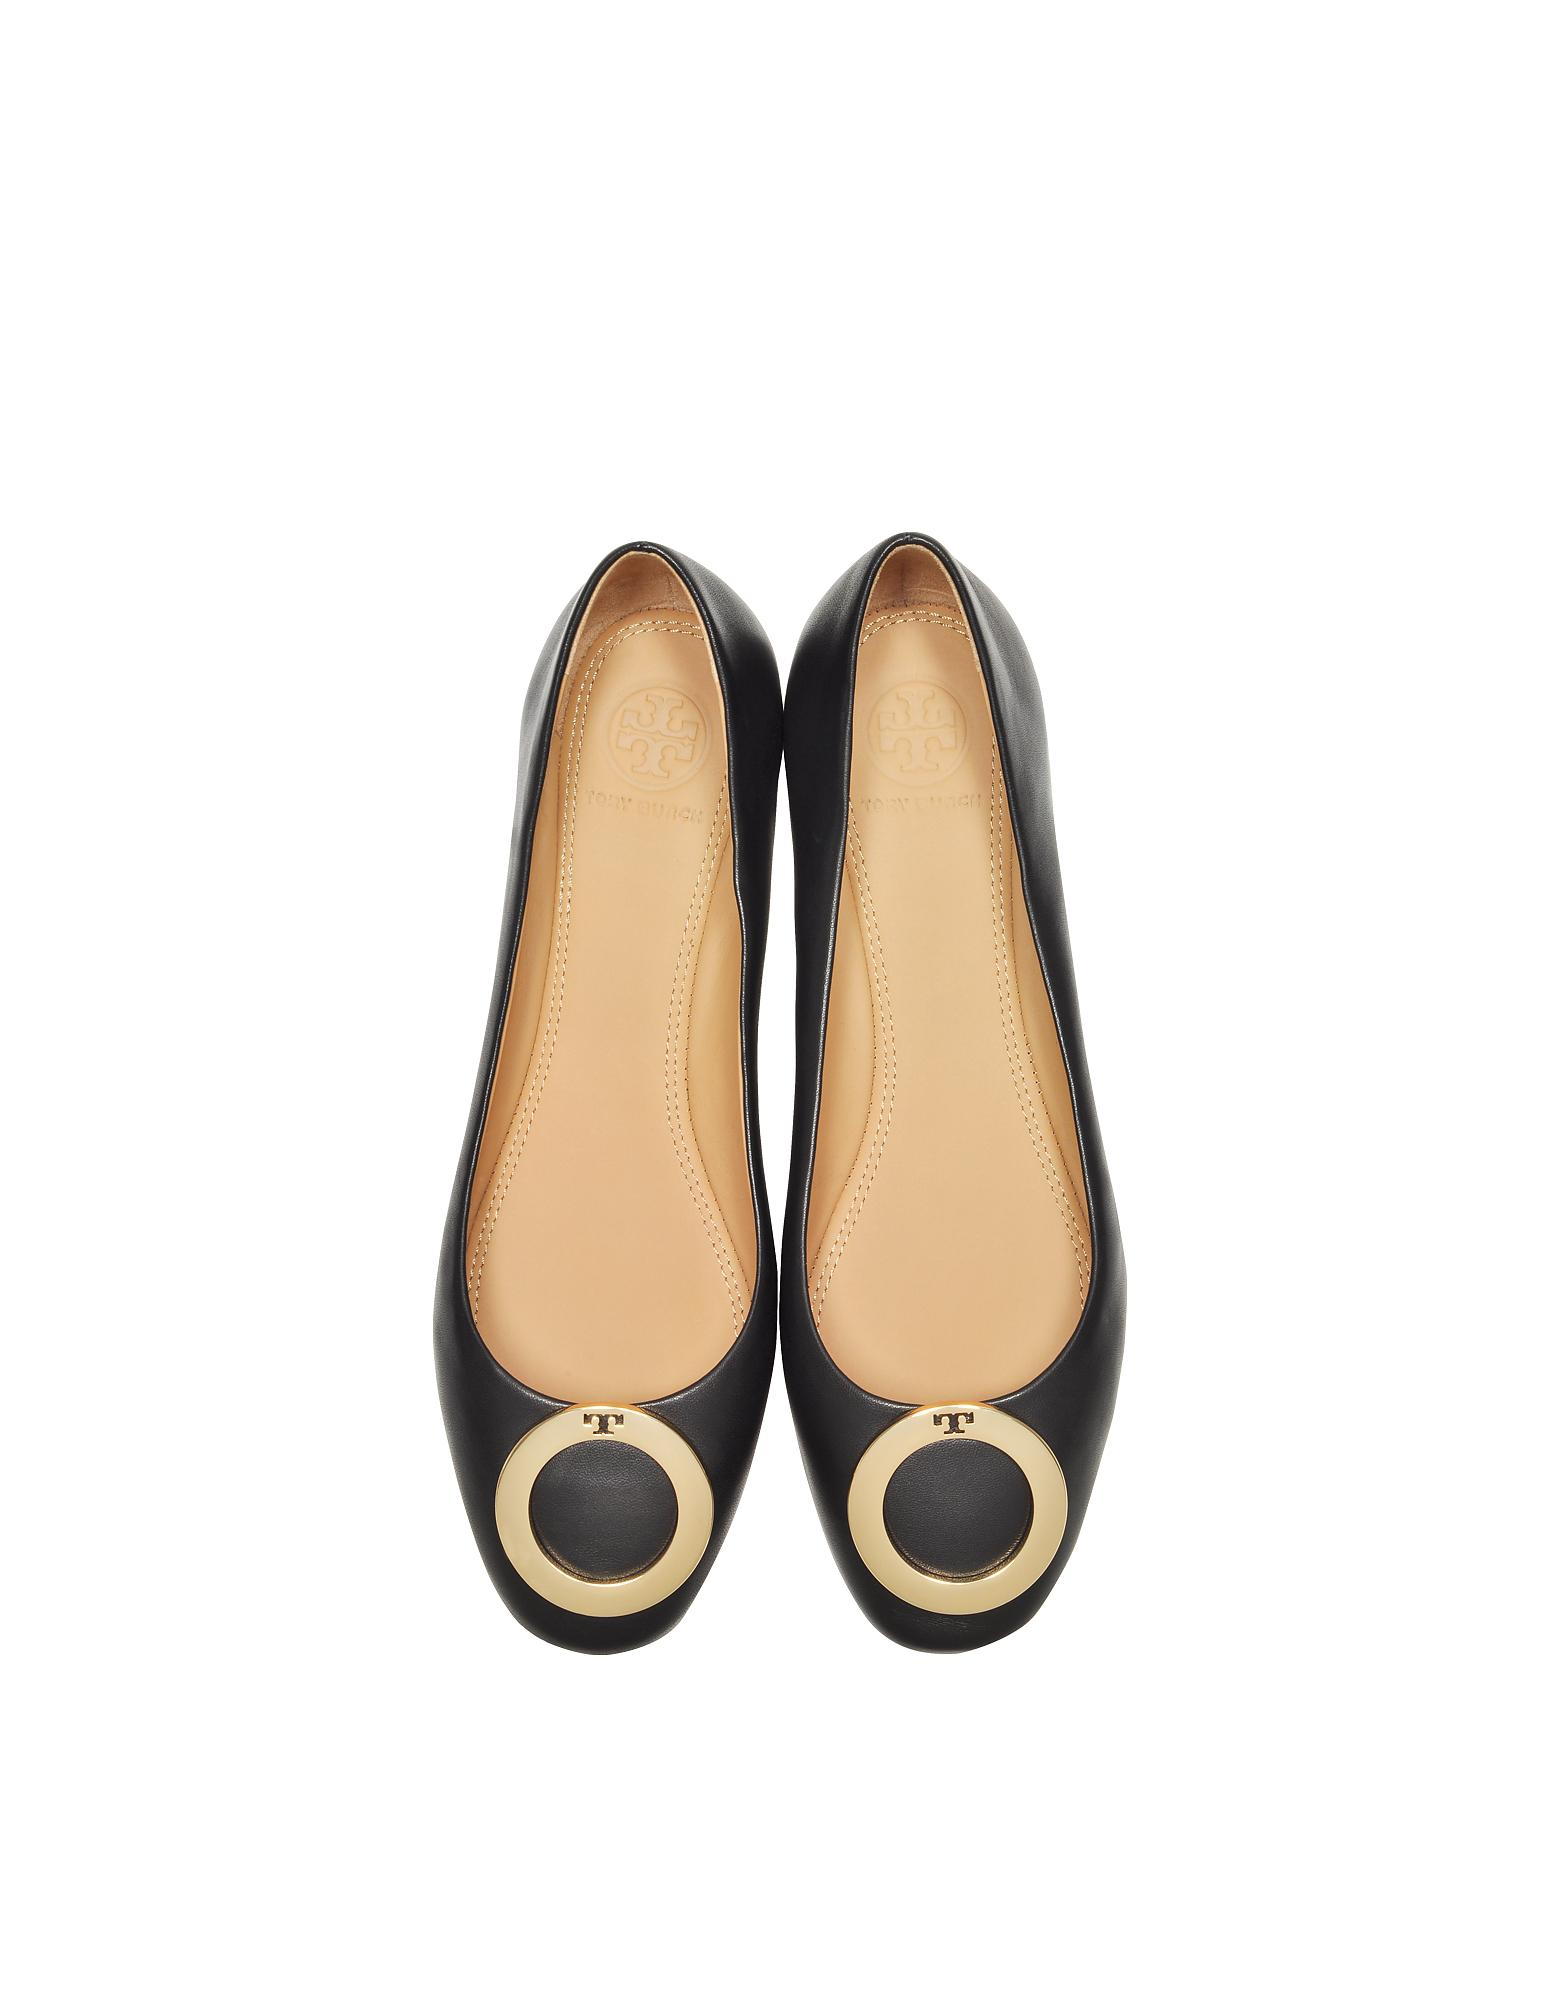 f2c97145f3ce Lyst - Tory Burch Caterina Perfect Black Leather Flat Ballerinas in ...